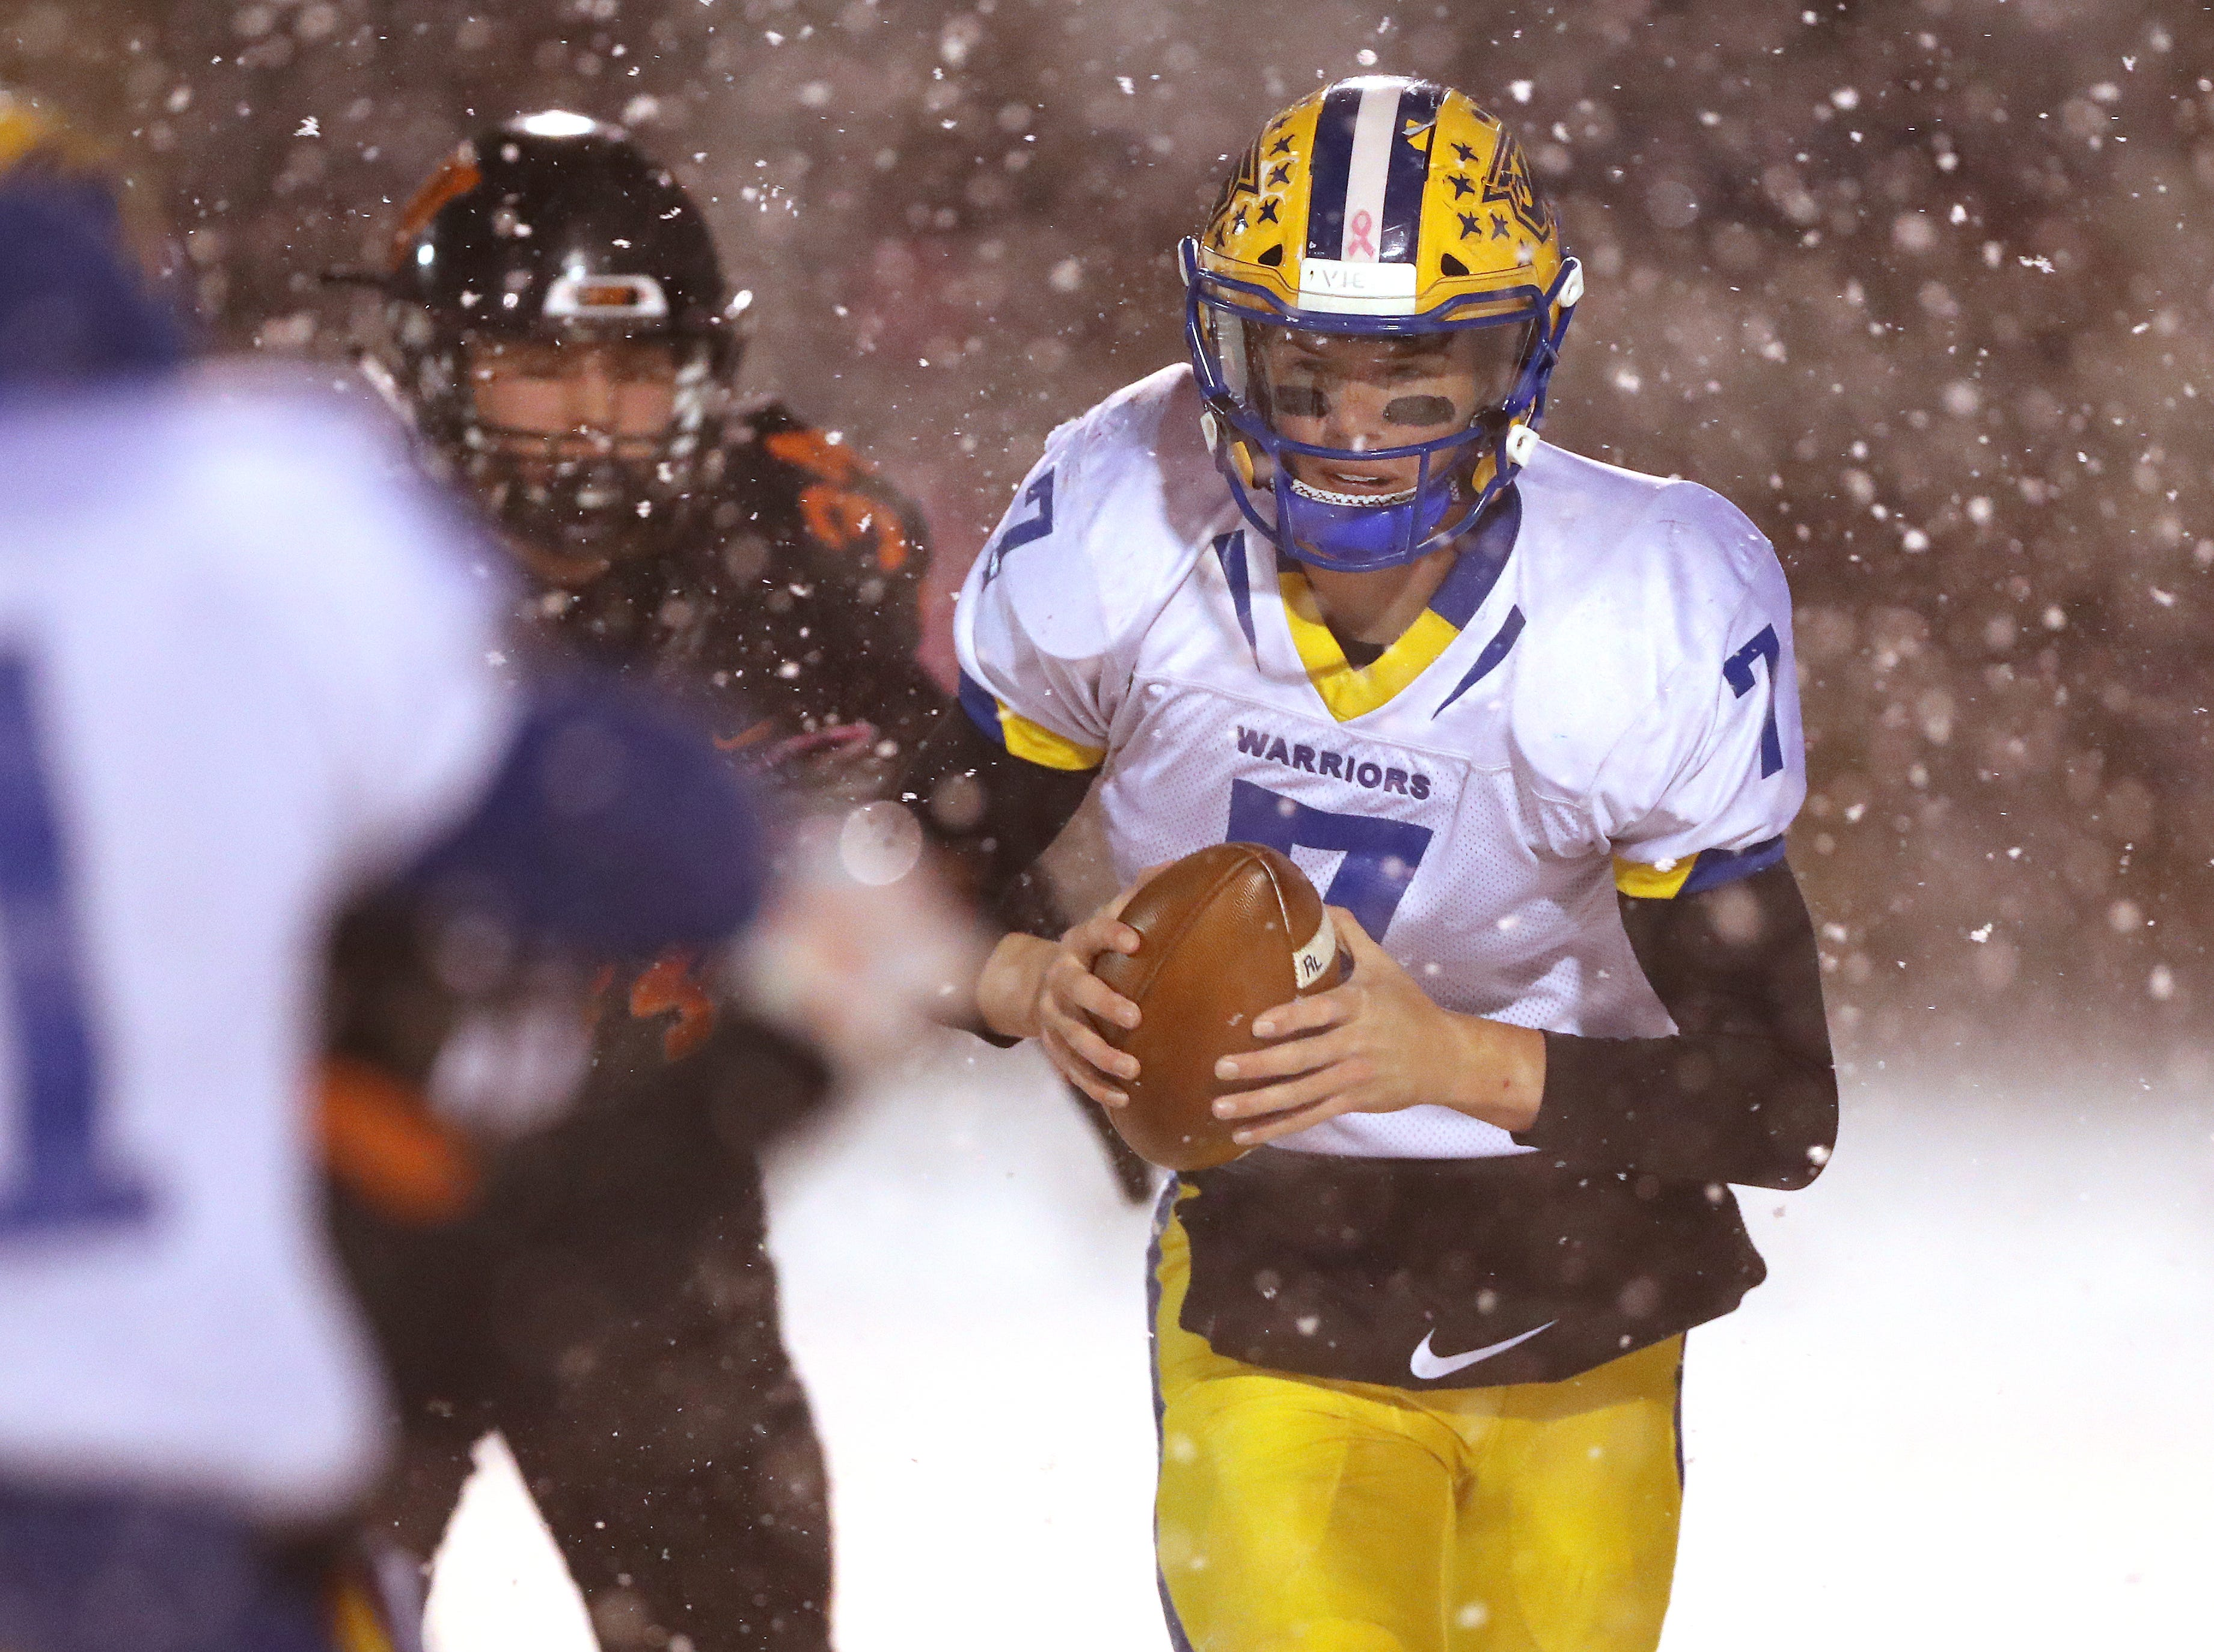 Rice Lake quarterback Peyton Buckley looks for room against West De Pere in the Division 3 Level 4  WIAA playoffs Friday, November 9, 2018 at DC Everest in Weston, Wis.